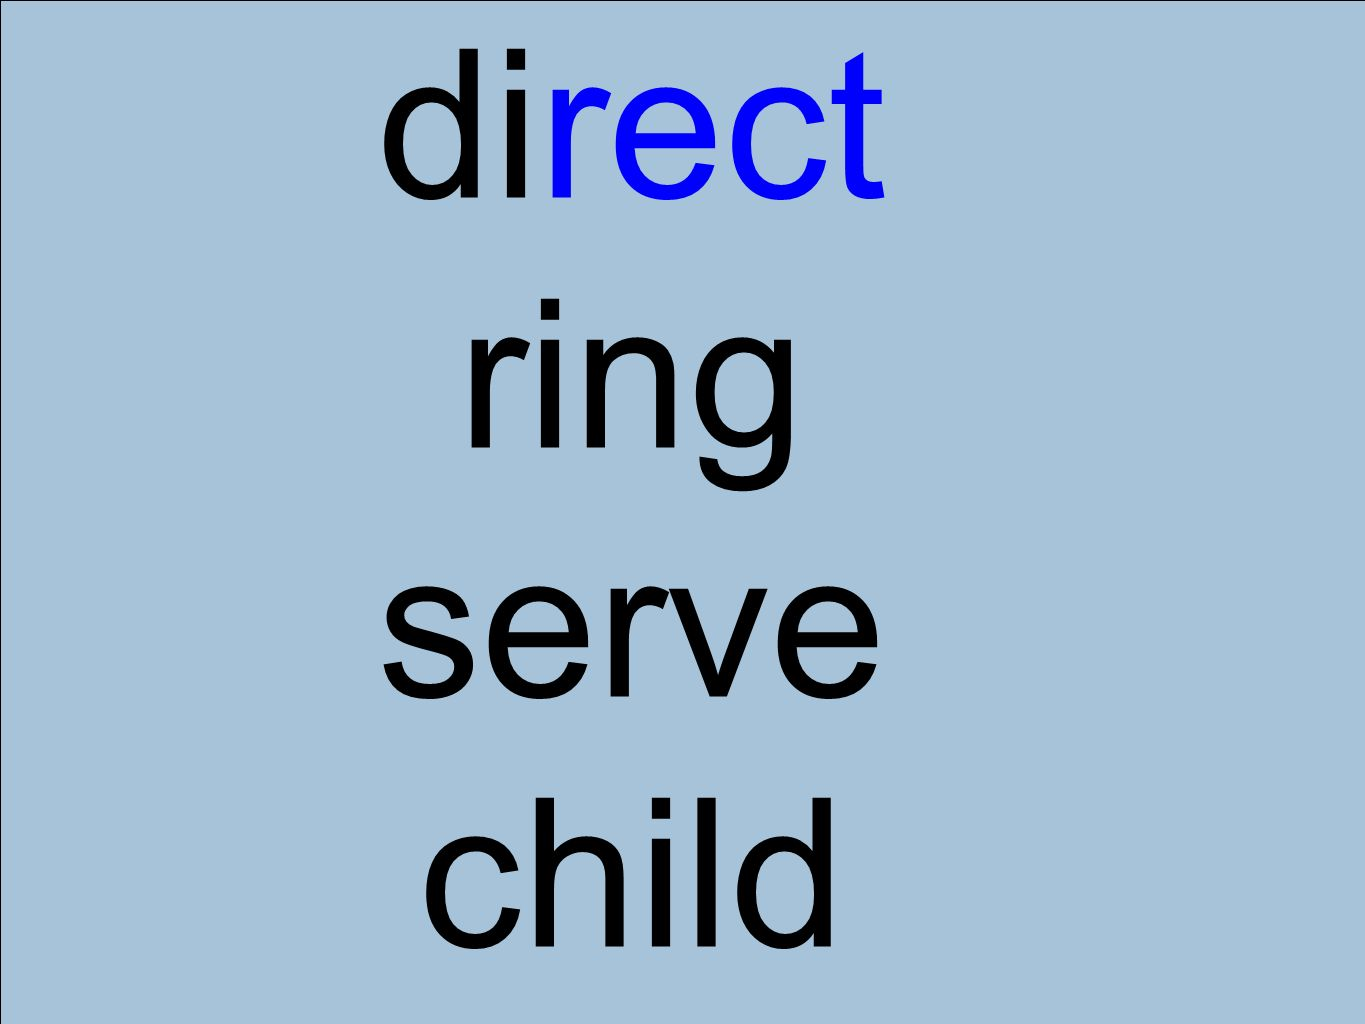 direct ring serve child